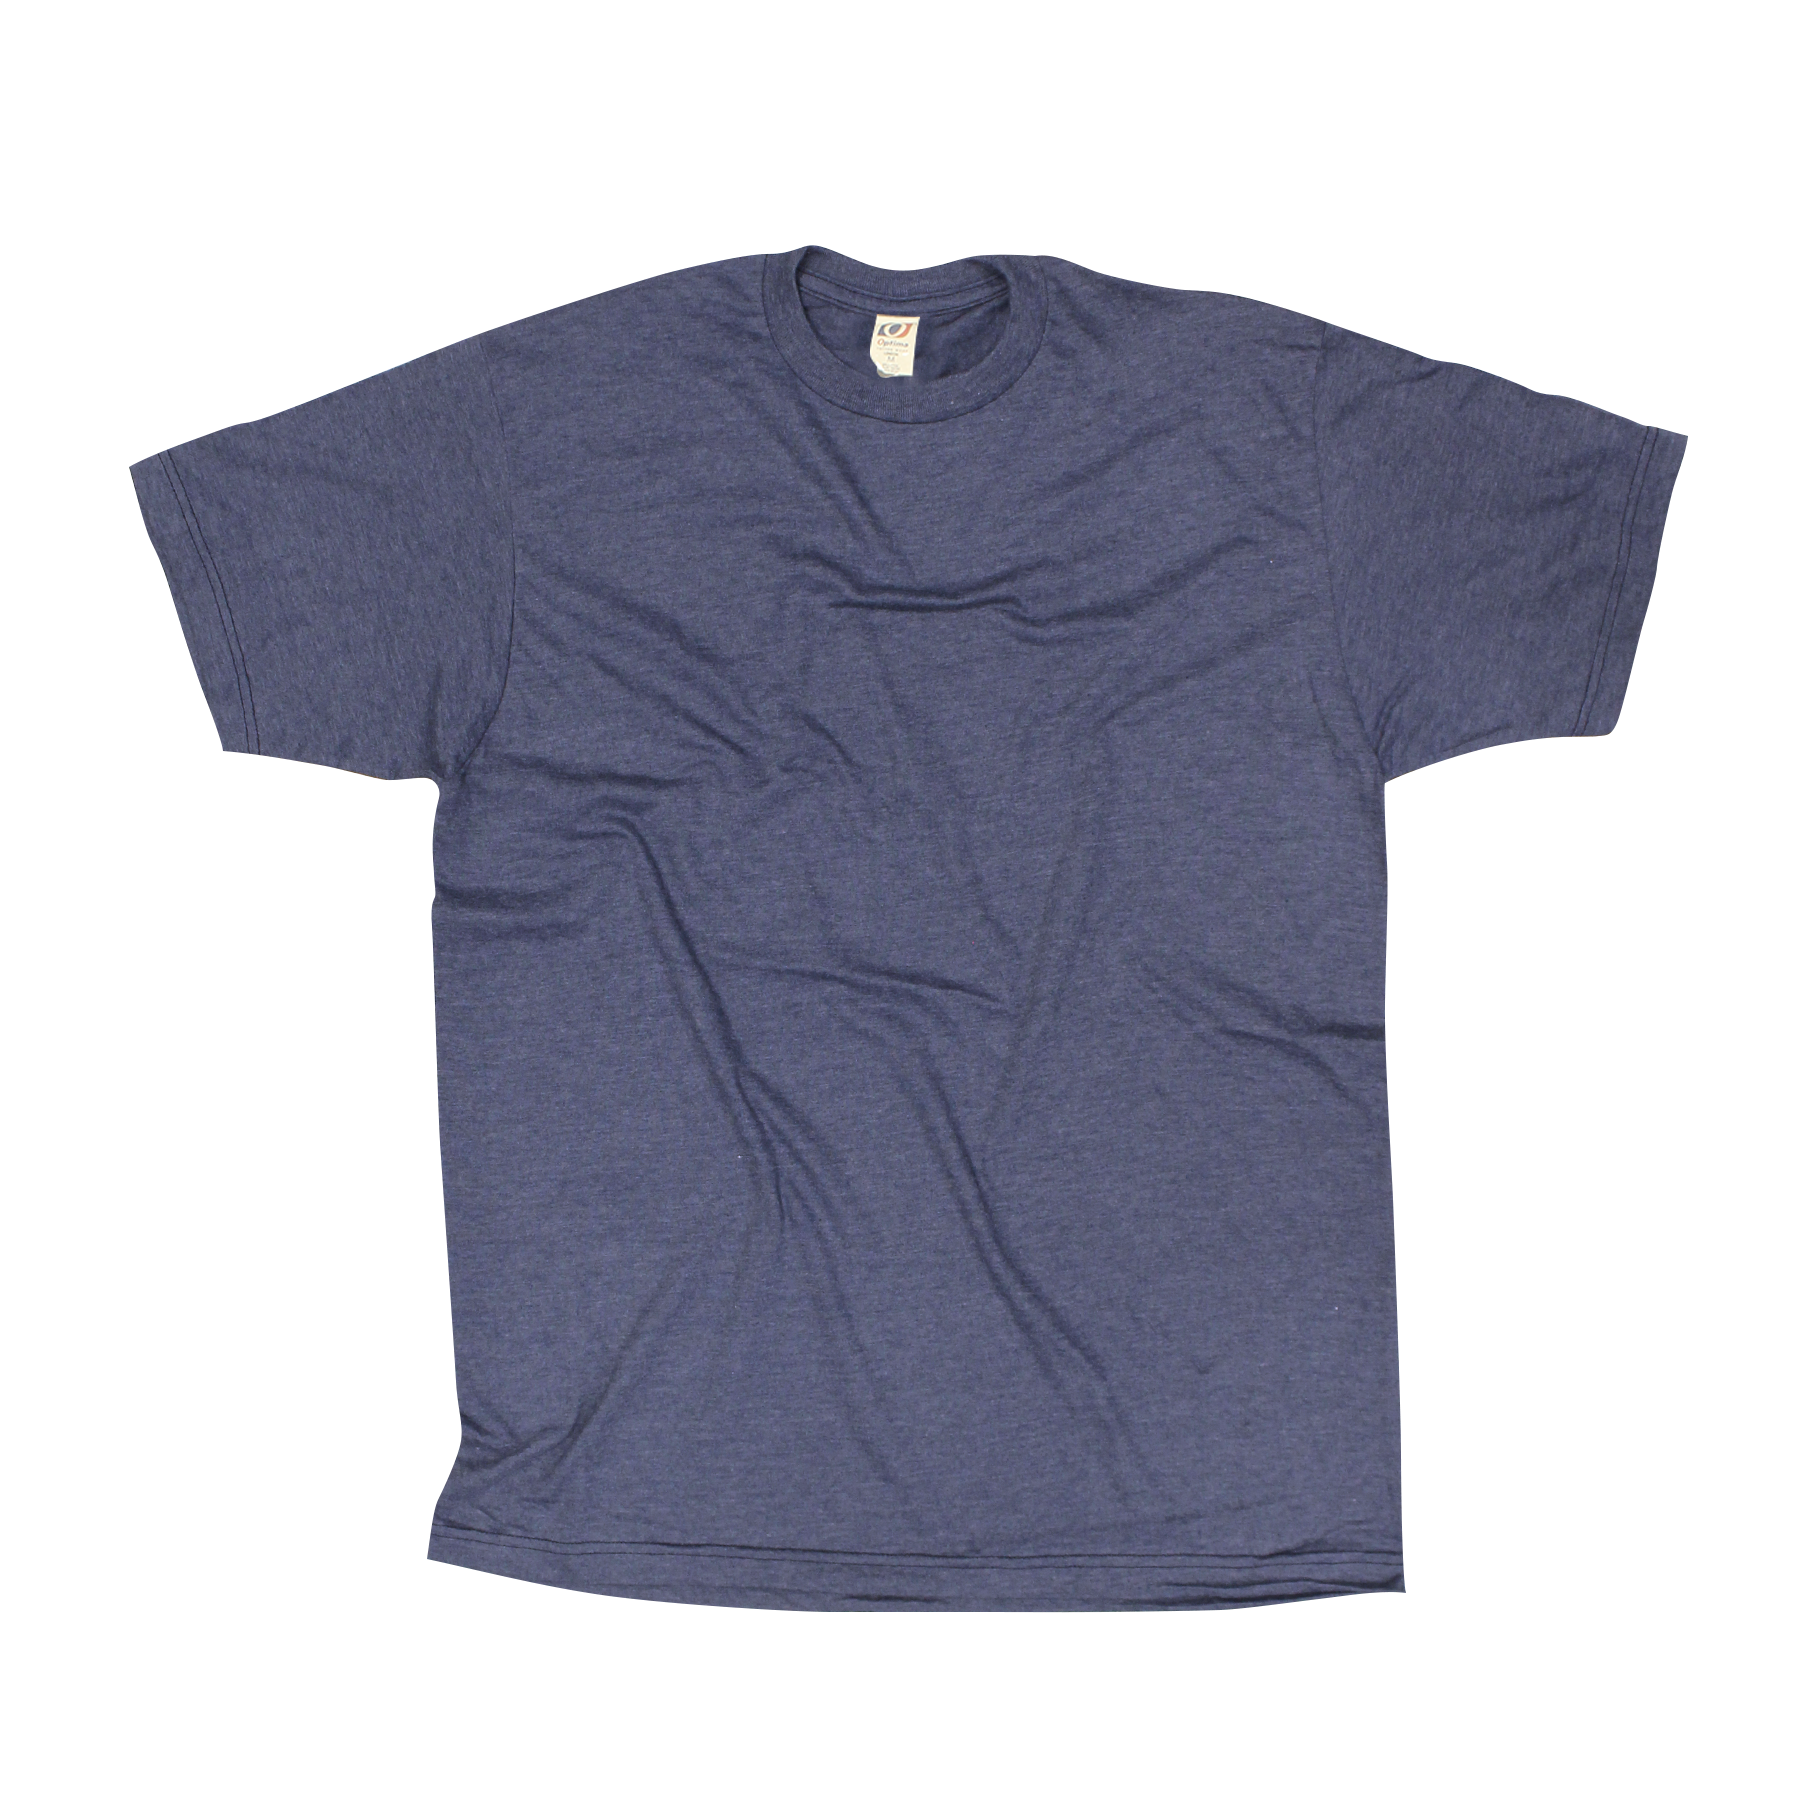 Optima Navy Heather - Medium - Men's Clearance